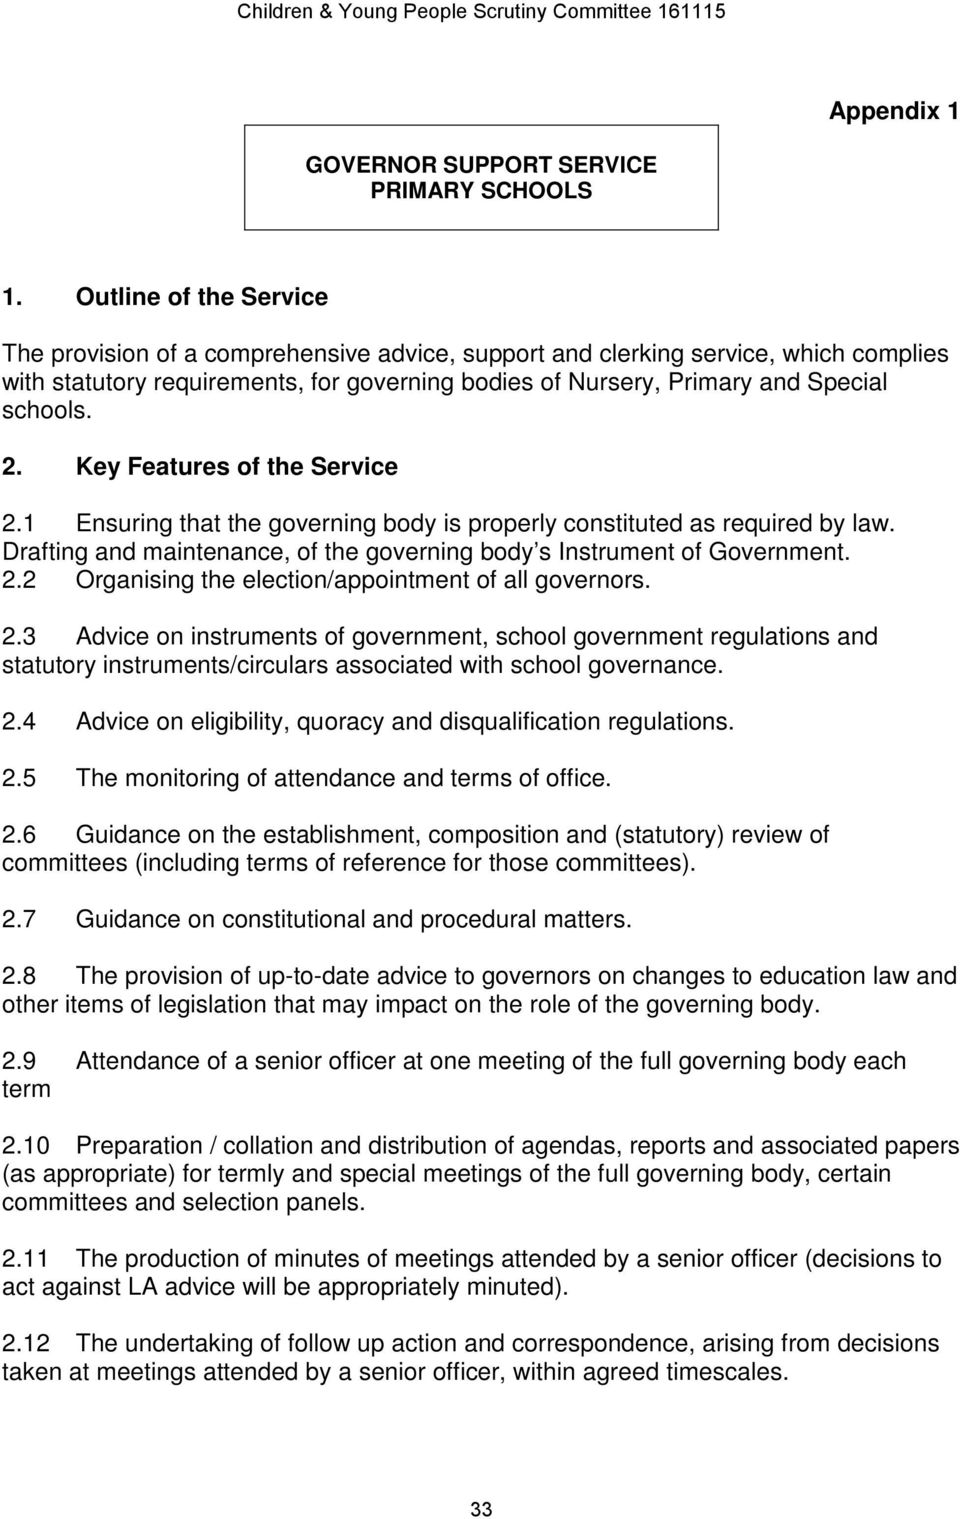 2. Key Features of the Service 2.1 Ensuring that the governing body is properly constituted as required by law. Drafting and maintenance, of the governing body s Instrument of Government. 2.2 Organising the election/appointment of all governors.